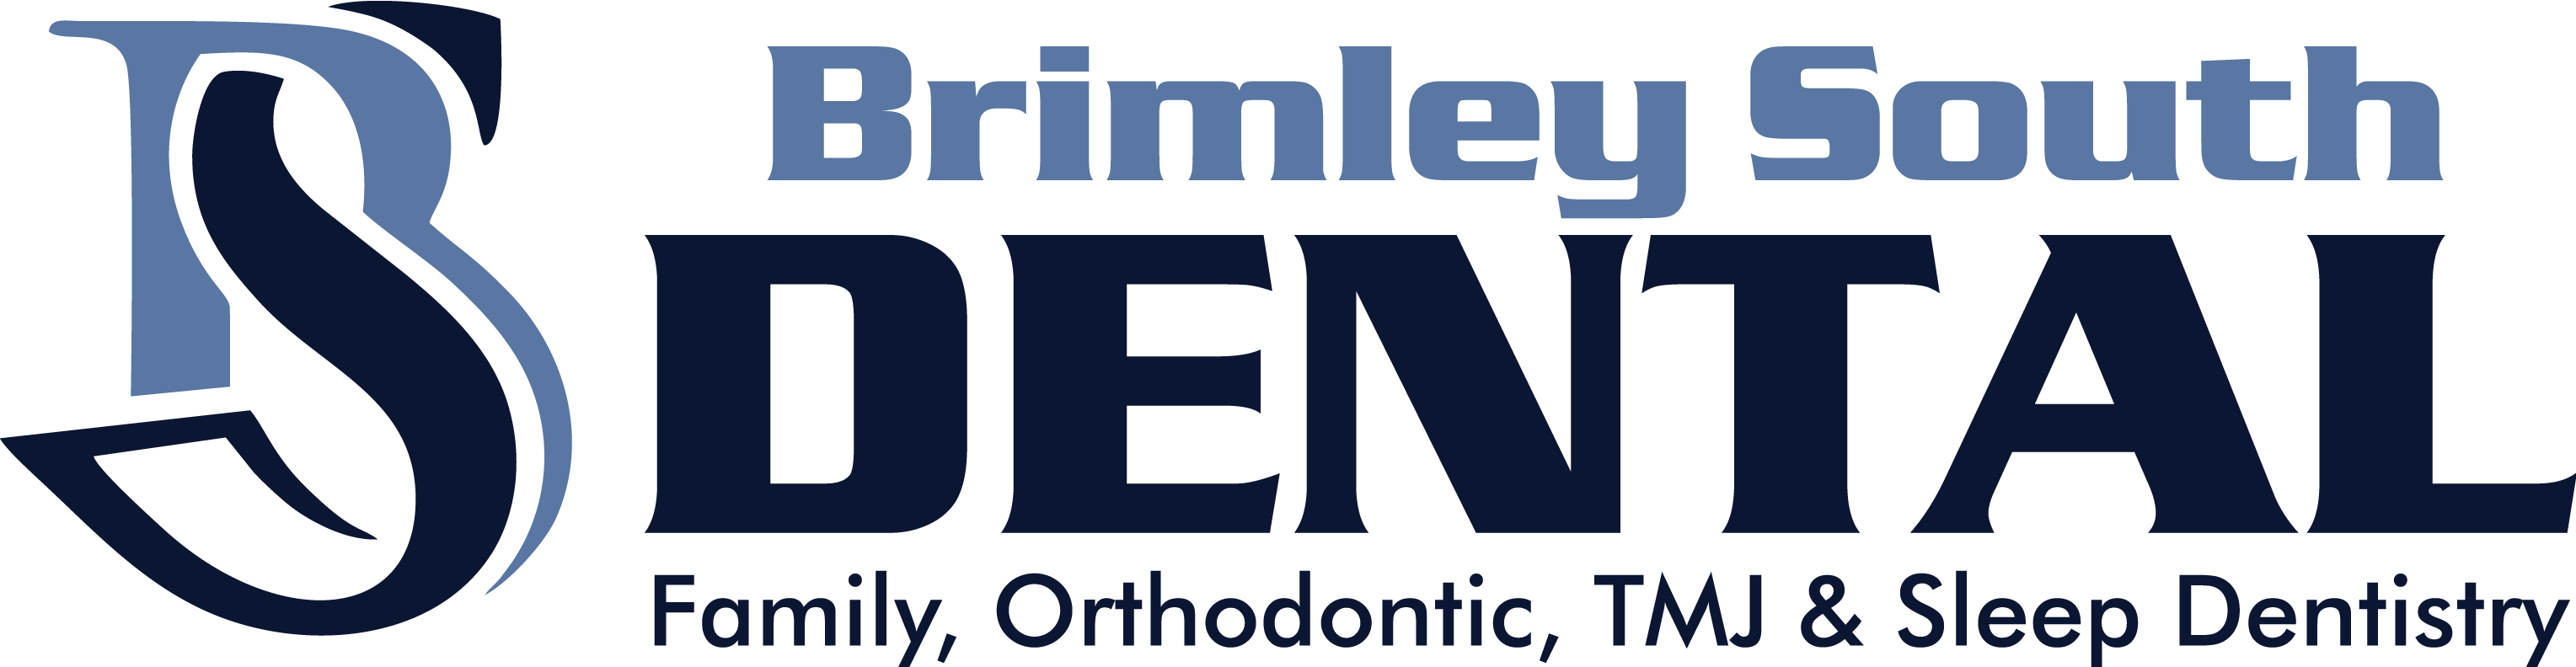 Brimley South Dental